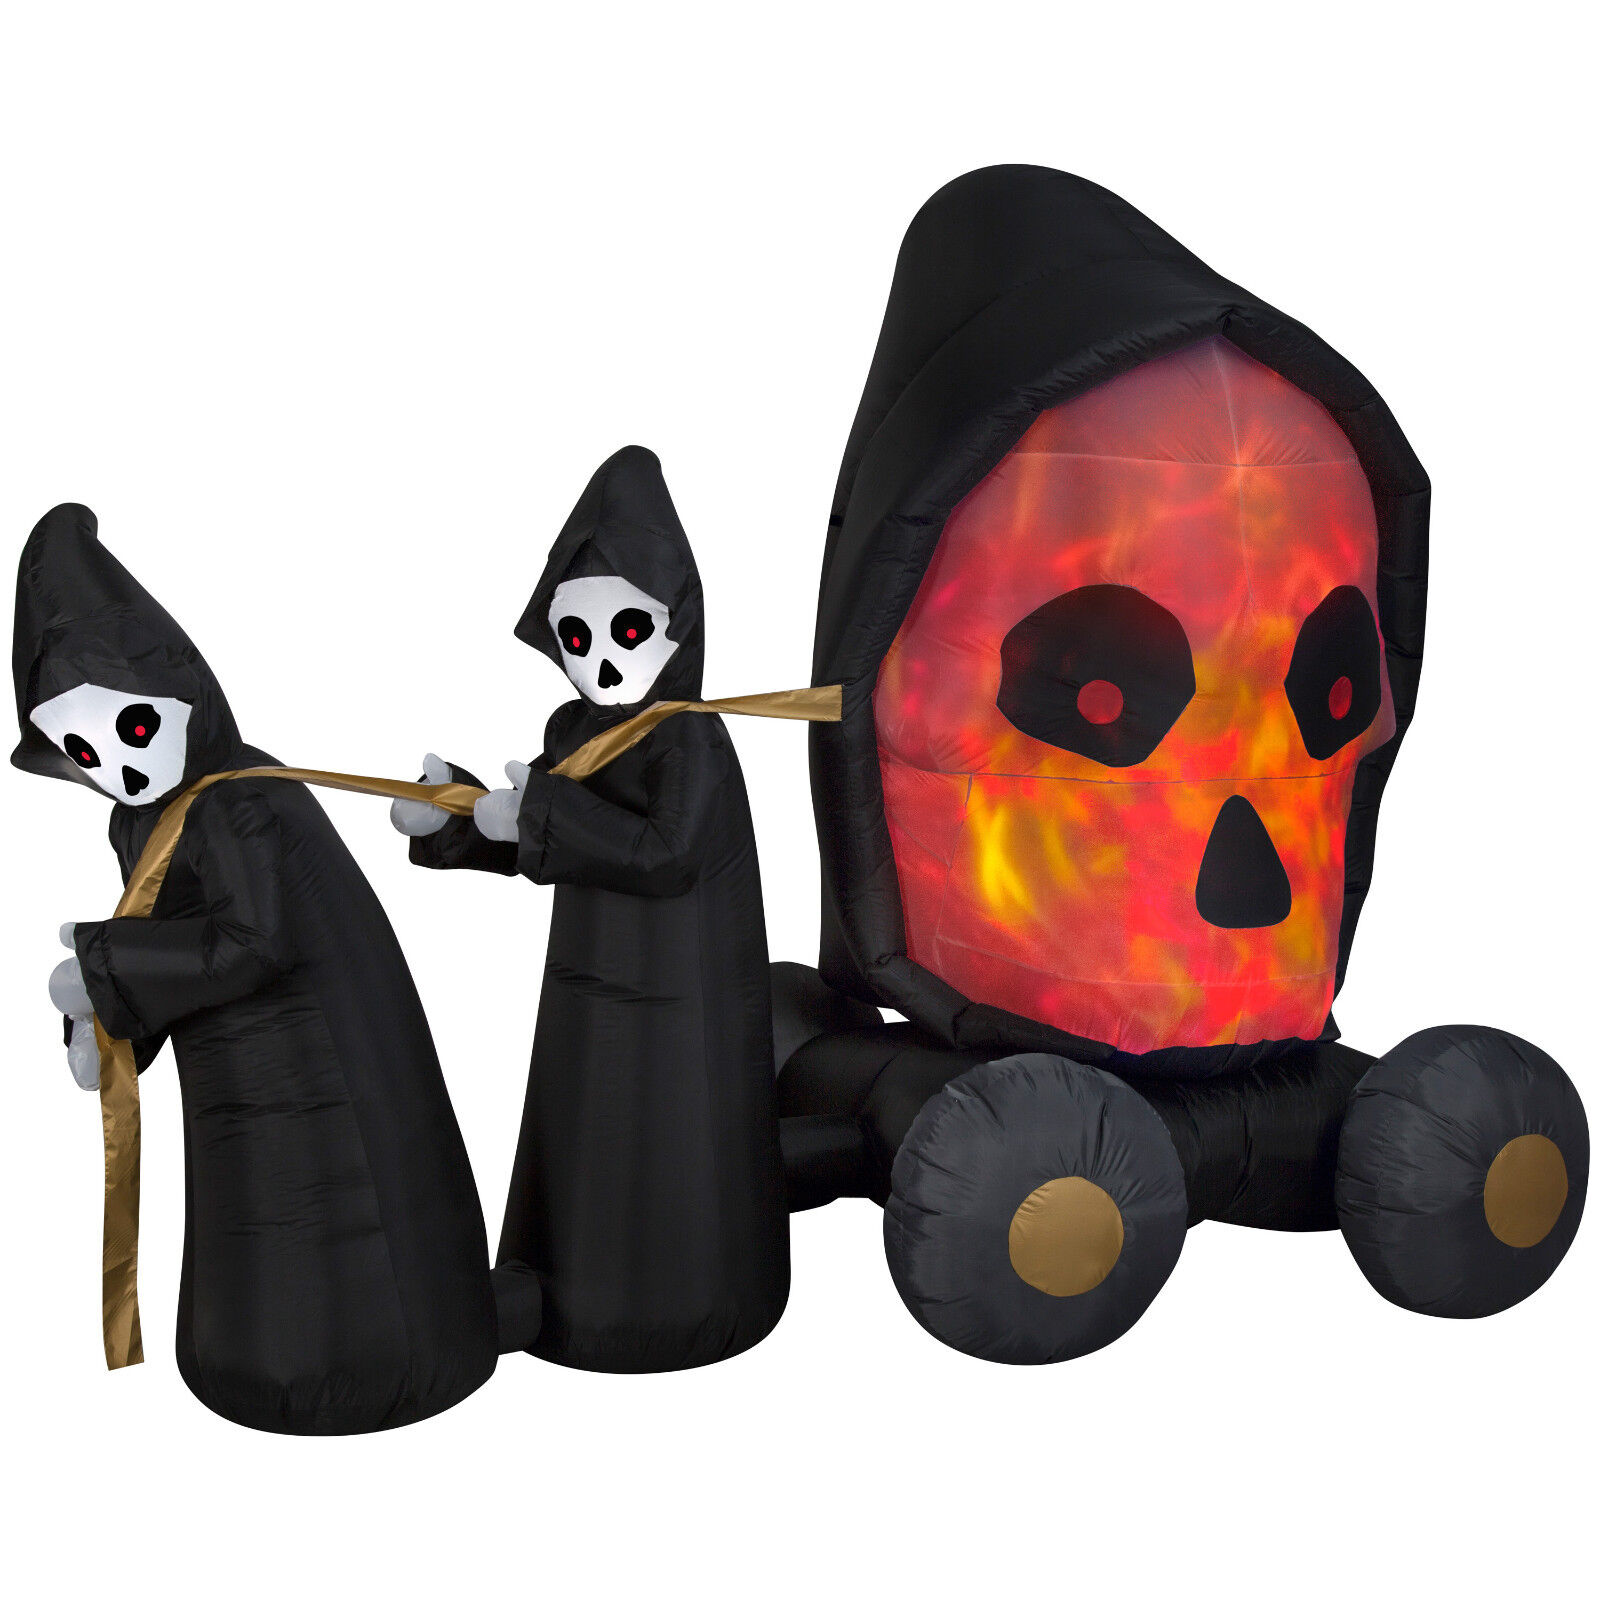 Halloween Fire & Ice Grim Reaper Carriage Skull Inflatable Airblown Yard Decor